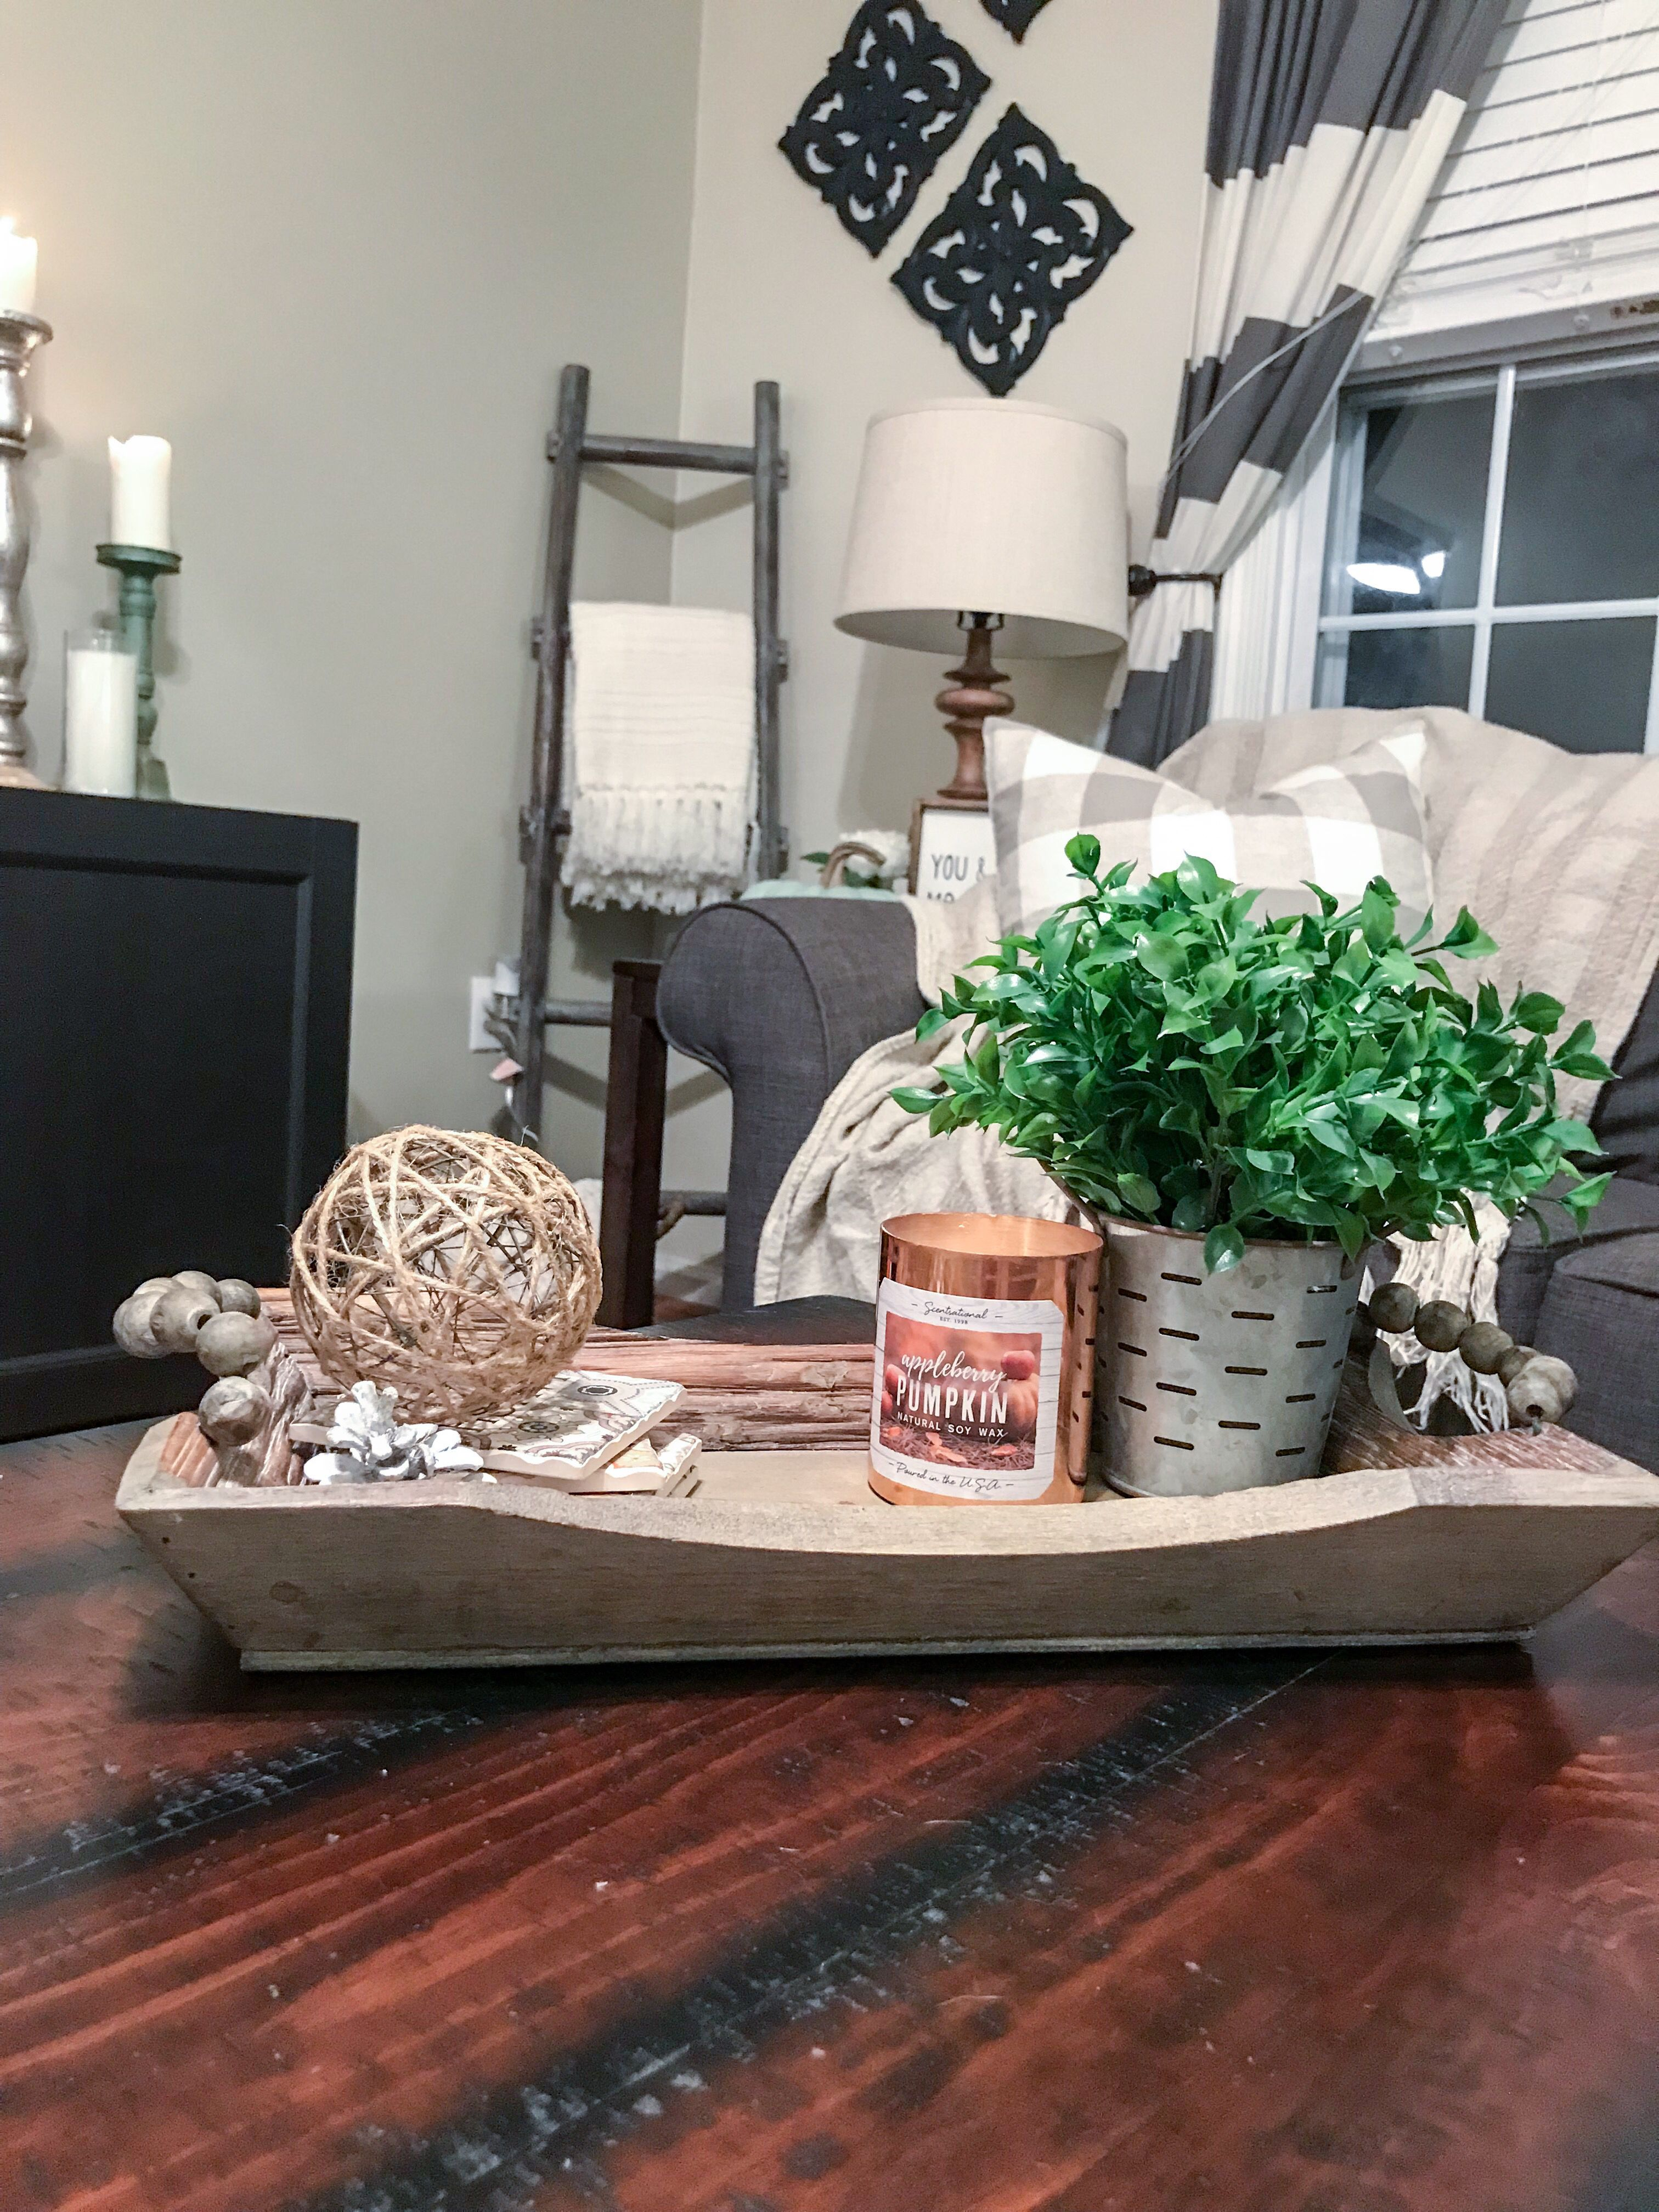 Wooden Tray Decor Wooden Tray Decor Decorating Coffee Tables Table Decorations